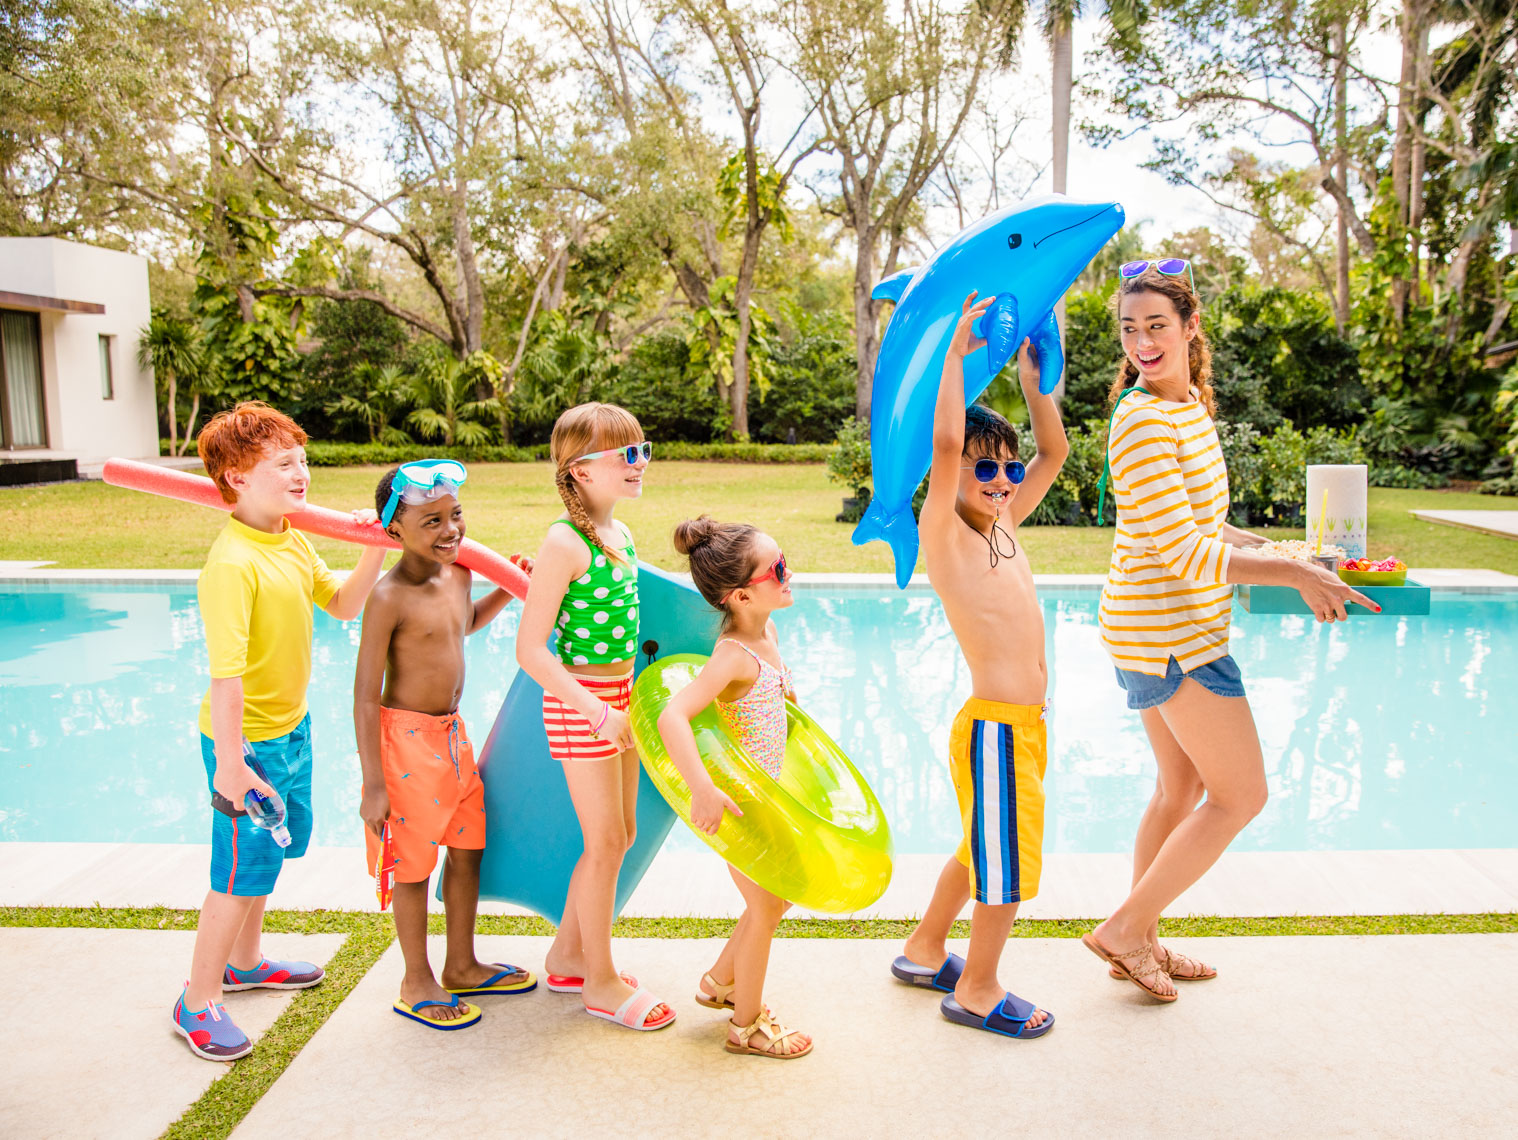 LIFESTYLE IMAGE OF KIDS AT POOL | TOSCA RADIGONDA PHOTOGRAPHY